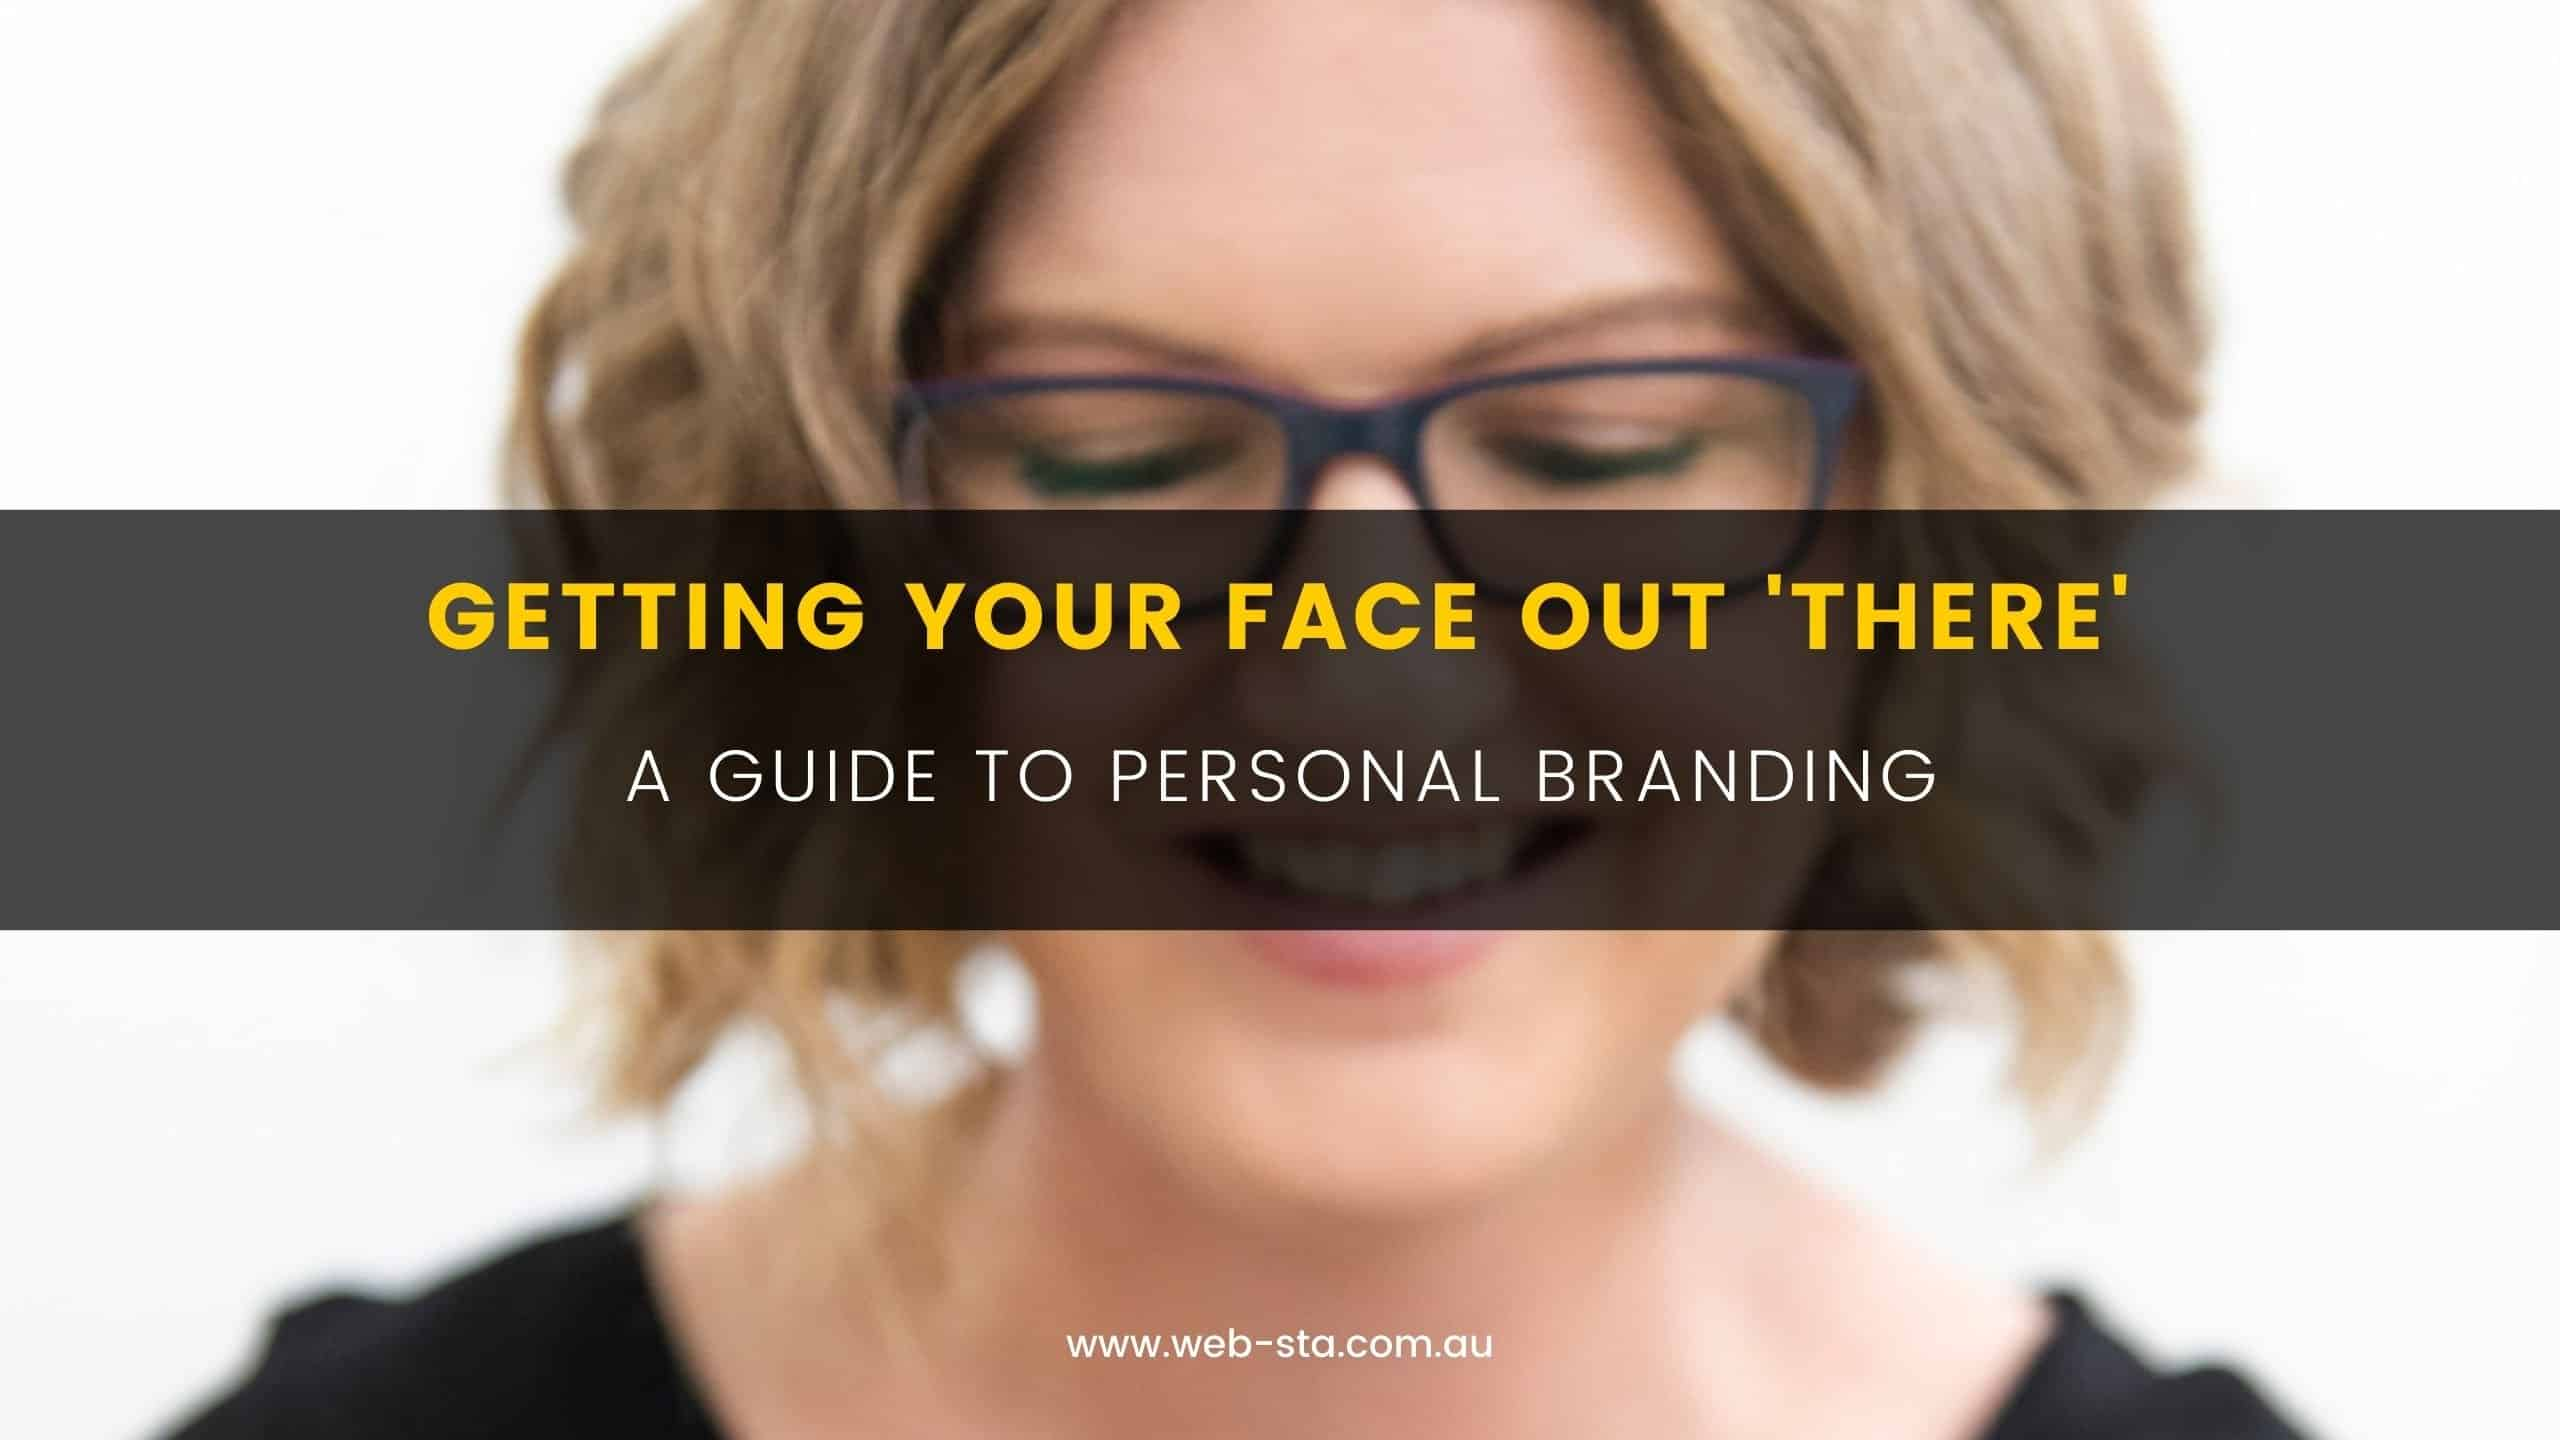 Blog Getting Your Face Out 'There' - A Guide to Personal Branding (1)